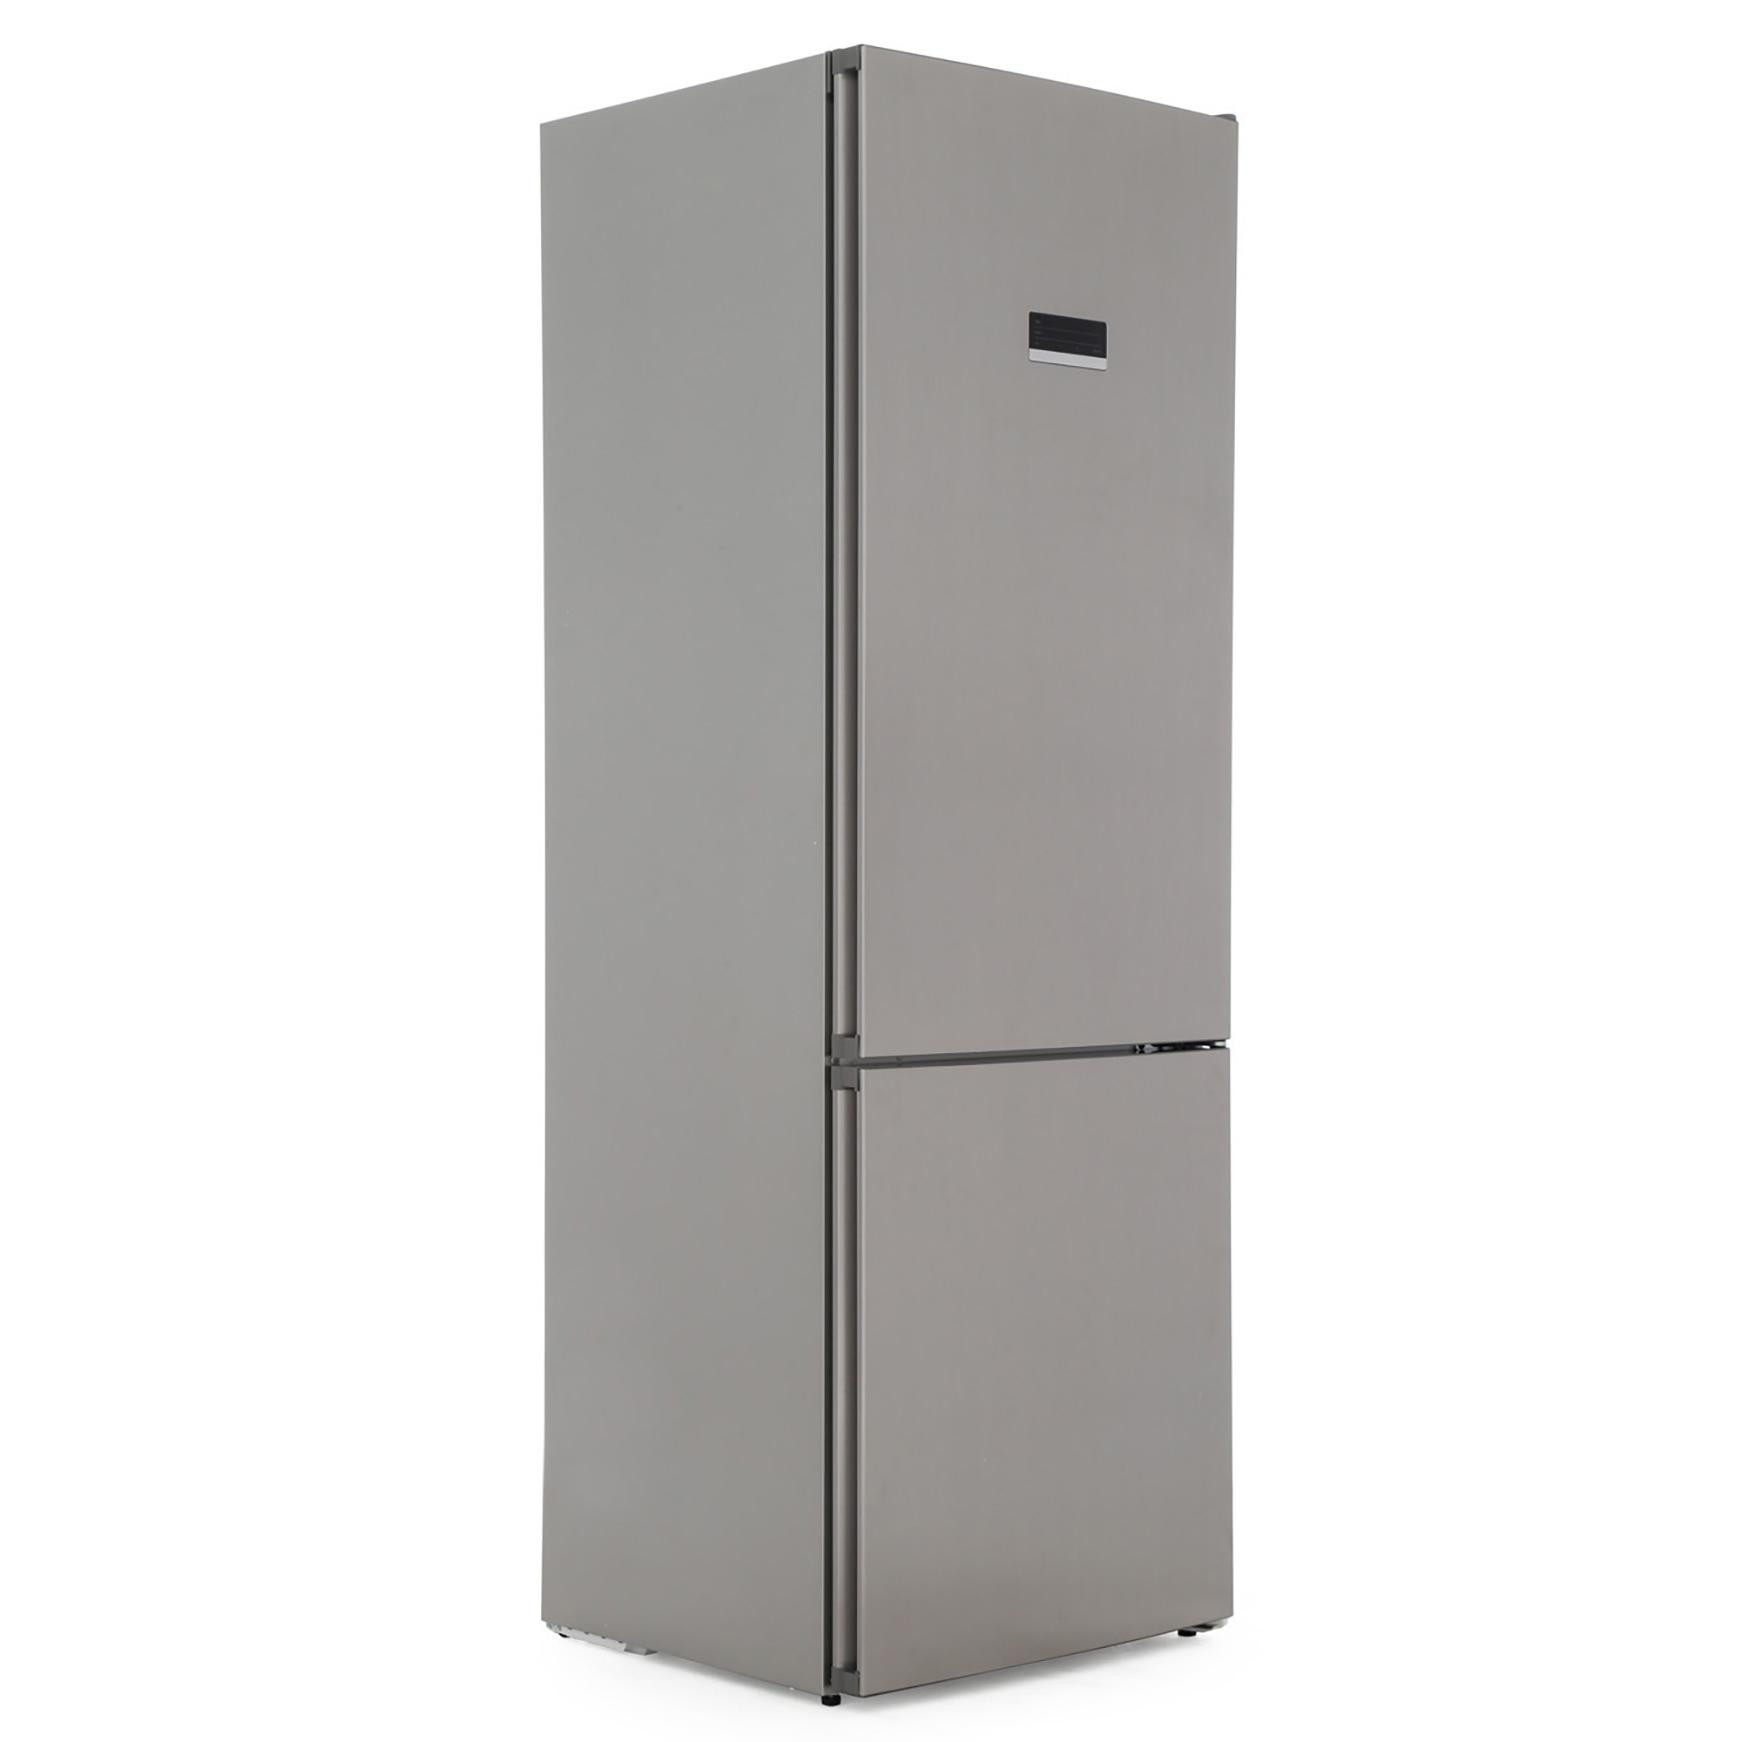 Bosch Serie 4 KGN49XL30G Fridge Freezer